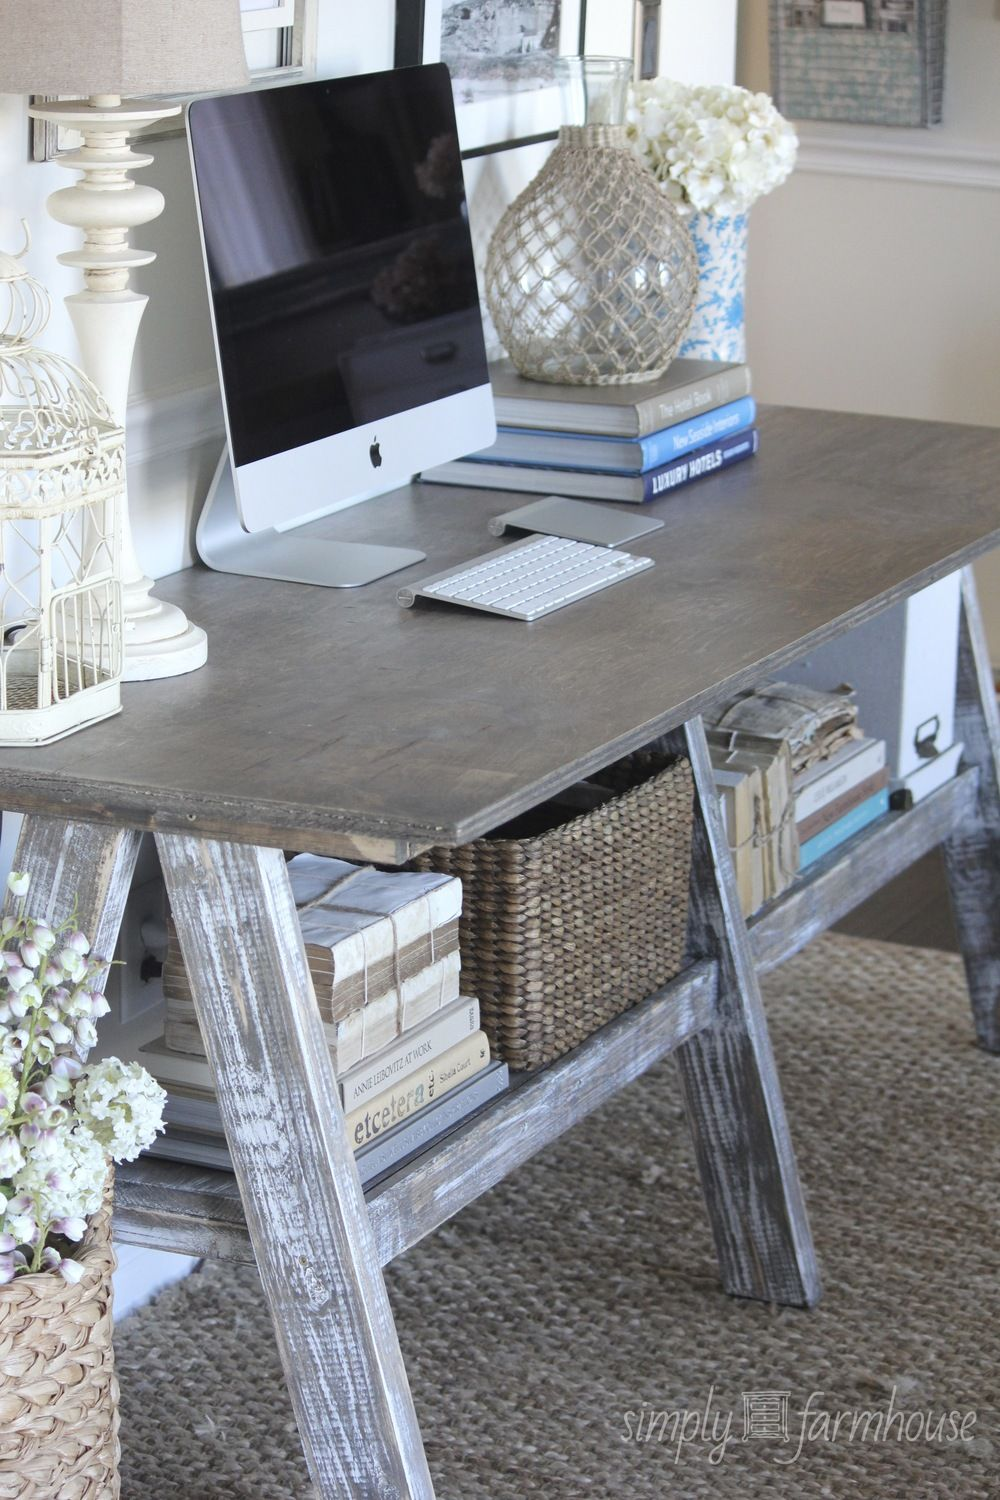 How to Buy the Perfect Home Computer Desk